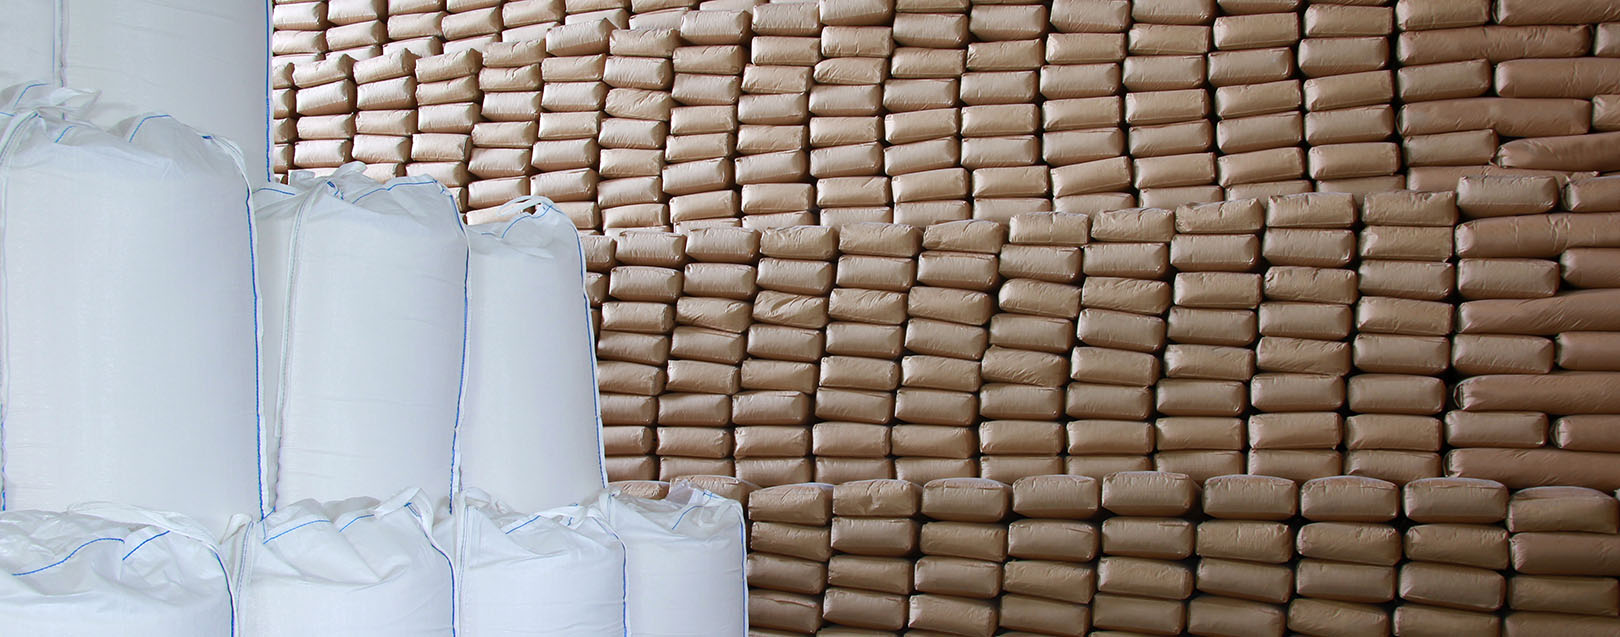 UPDATE 1-Brazil Sugar Exports Dominated by RAW, Alvean - Agency Data